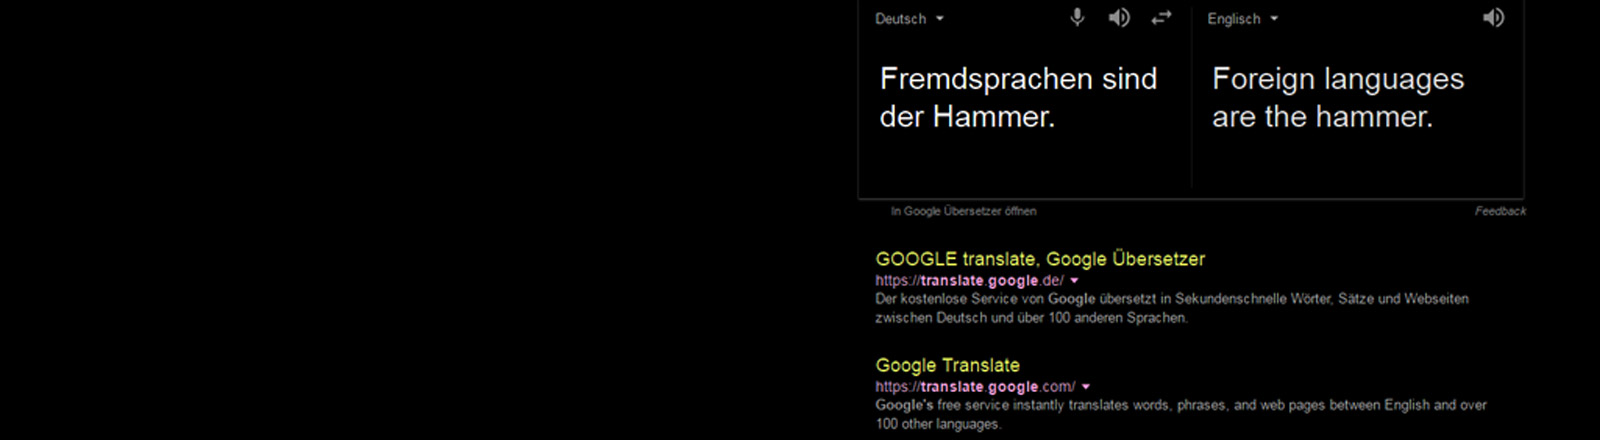 Screenshot von Google Translate